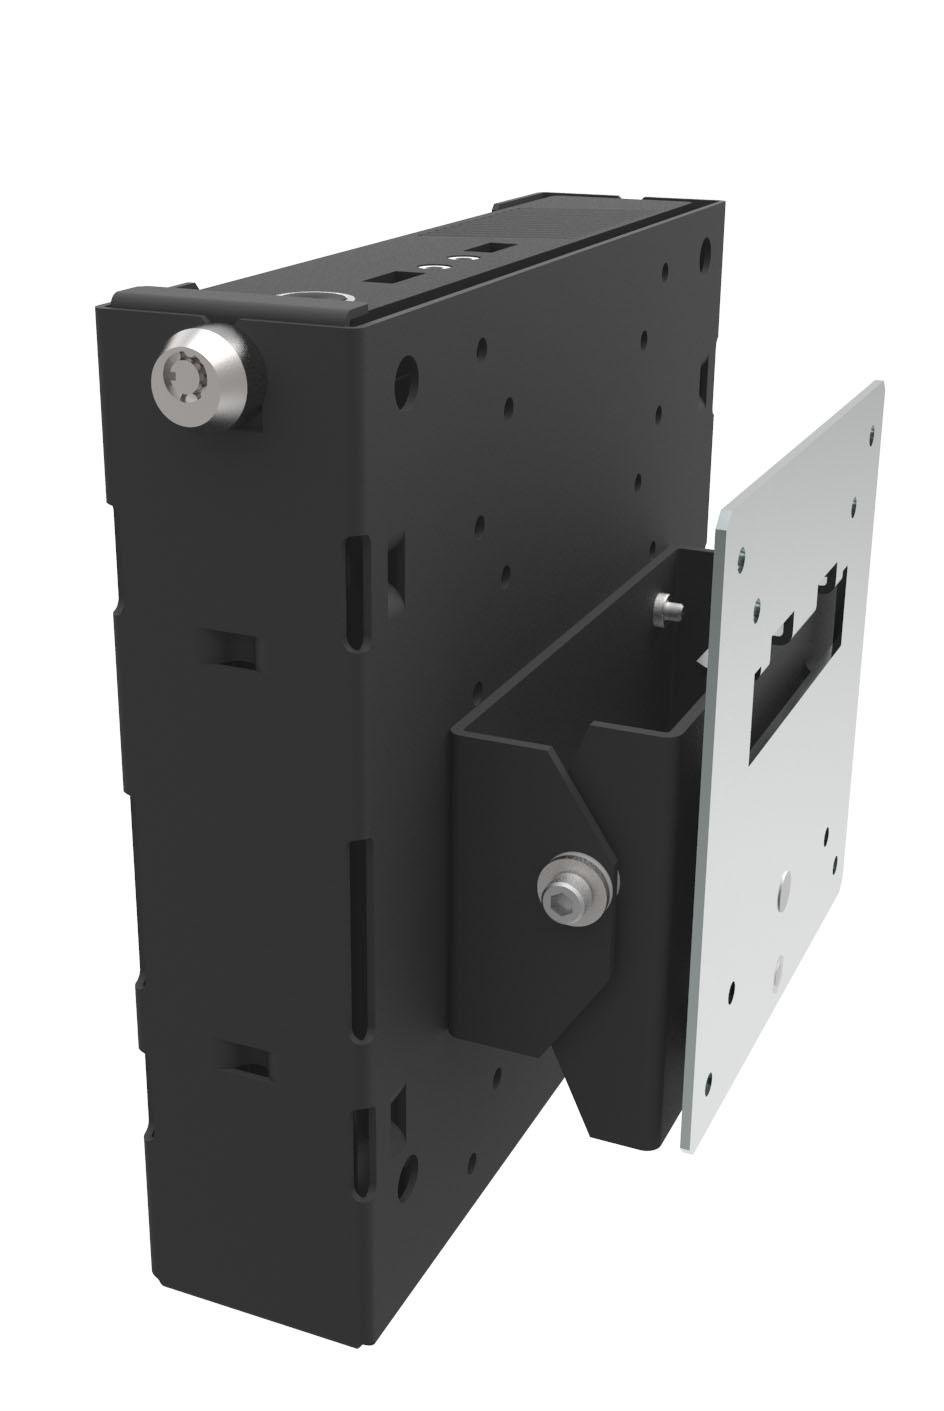 RackSolutions Wall Mount for Lenovo ThinkCentre M93p Tiny Desktop - Tilt Monitor